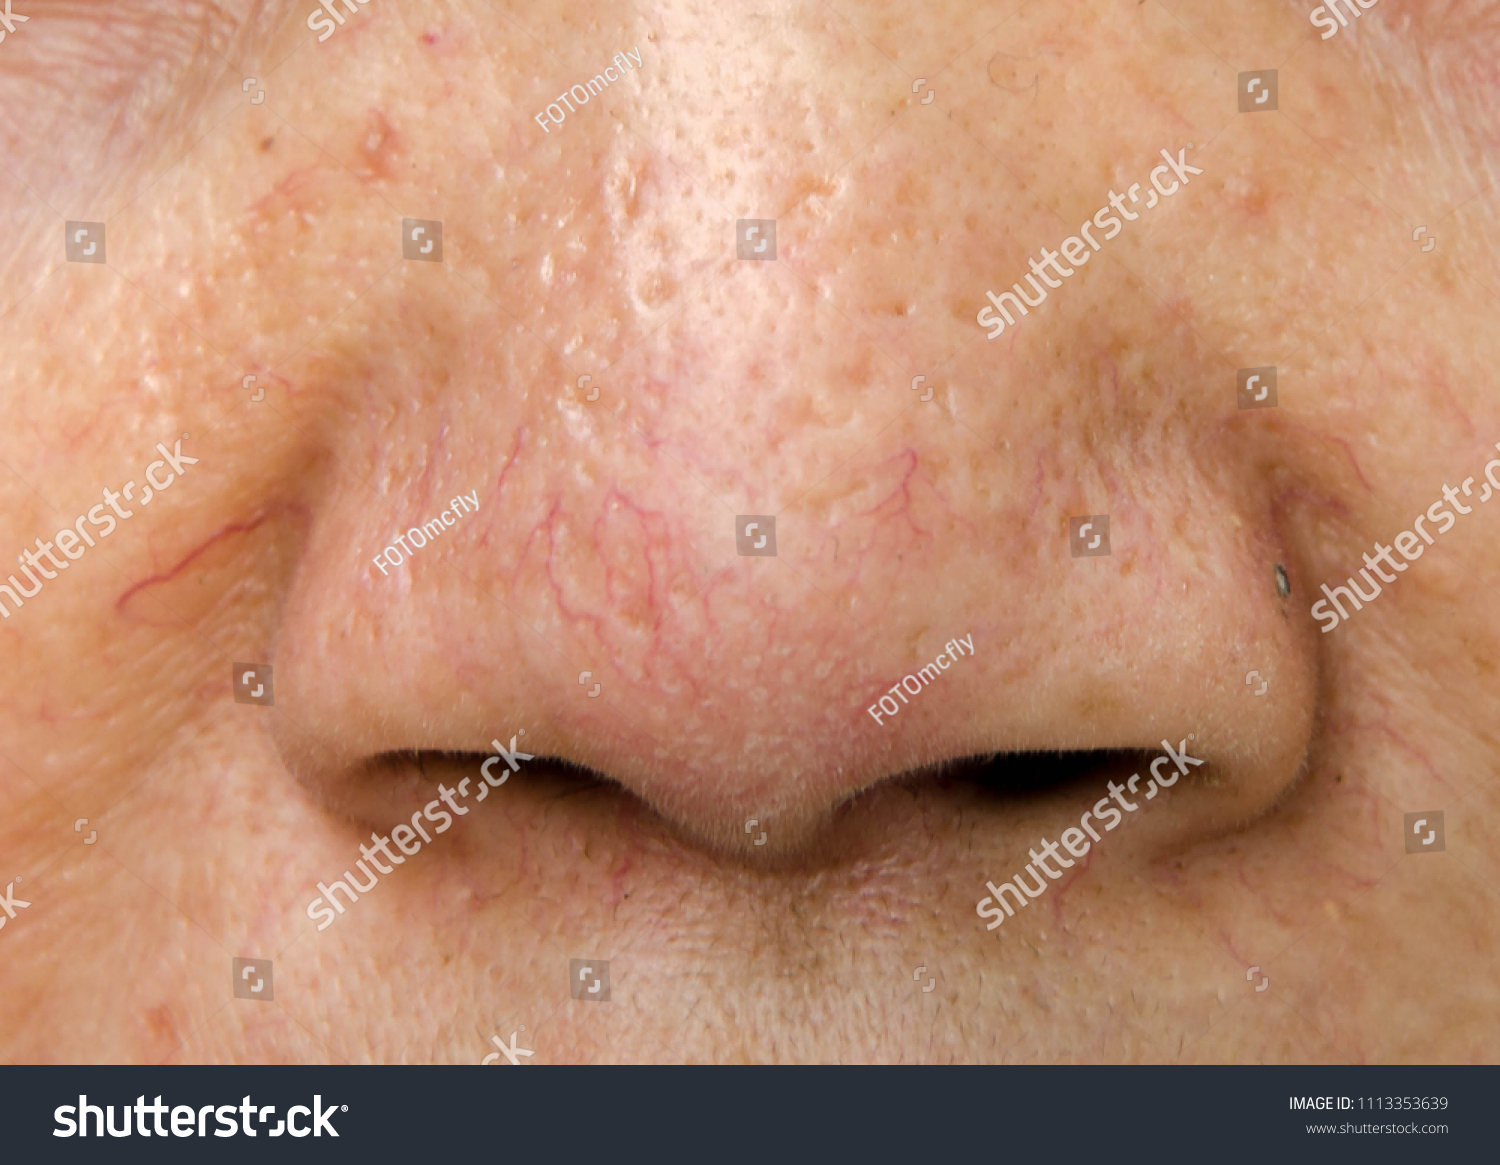 Capillaries On Women Nose Acne Scars People Stock Image 1113353639